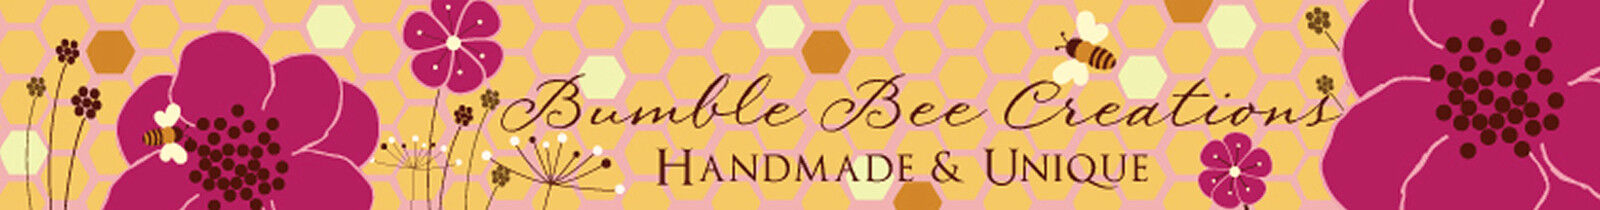 Bumble Bee Creations 833